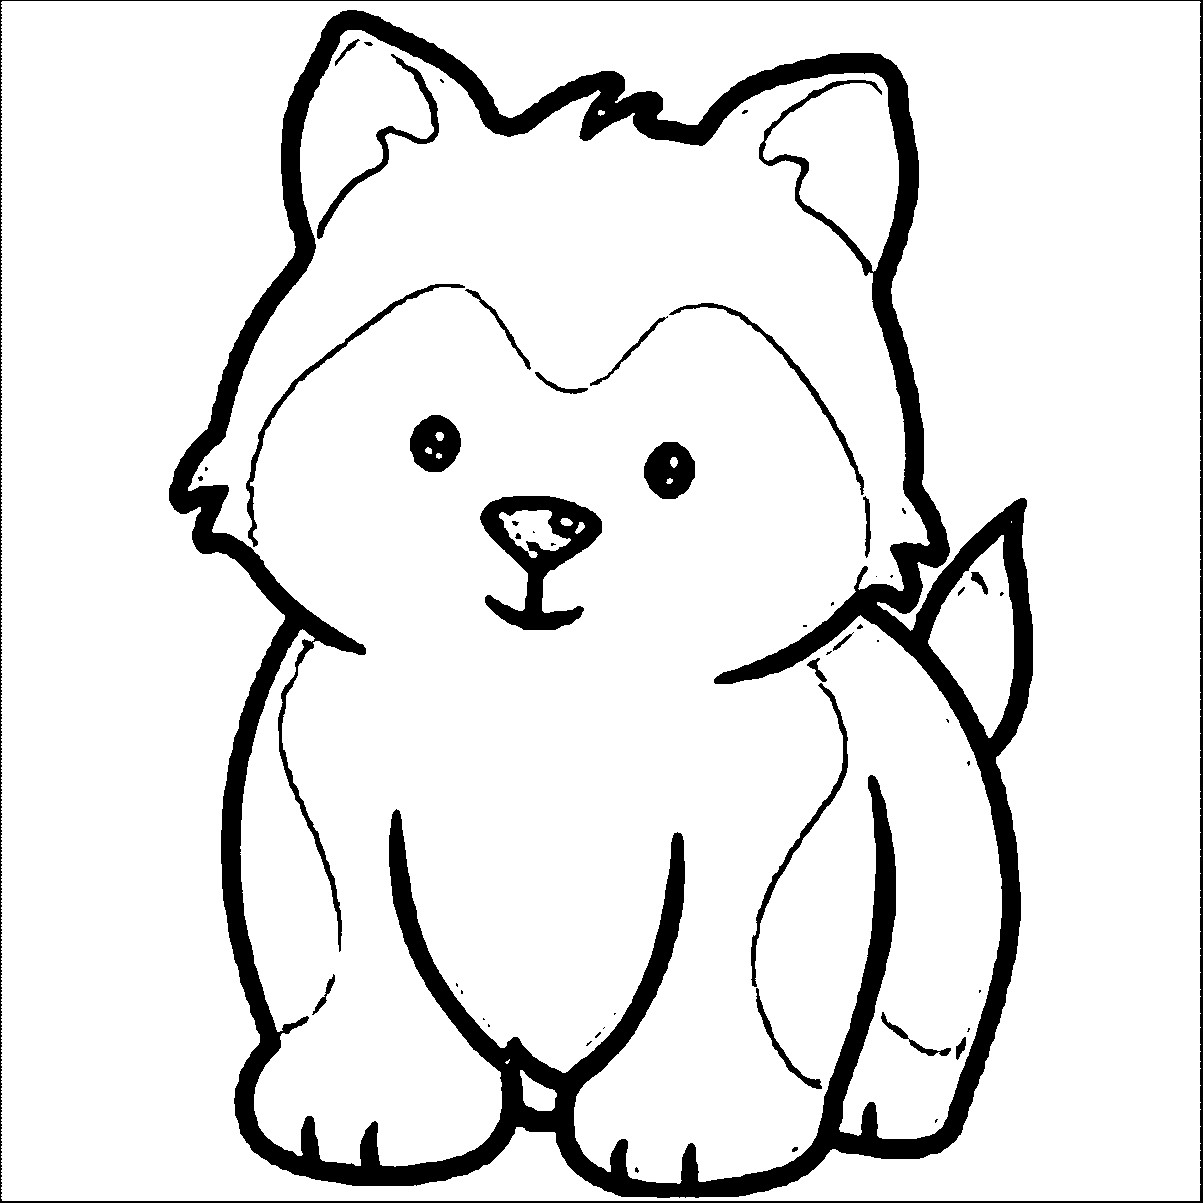 Pug Puppy Coloring Pages Pug Clipart Coloring Sheet Picture 184732 Pug Clipart Coloring Sheet